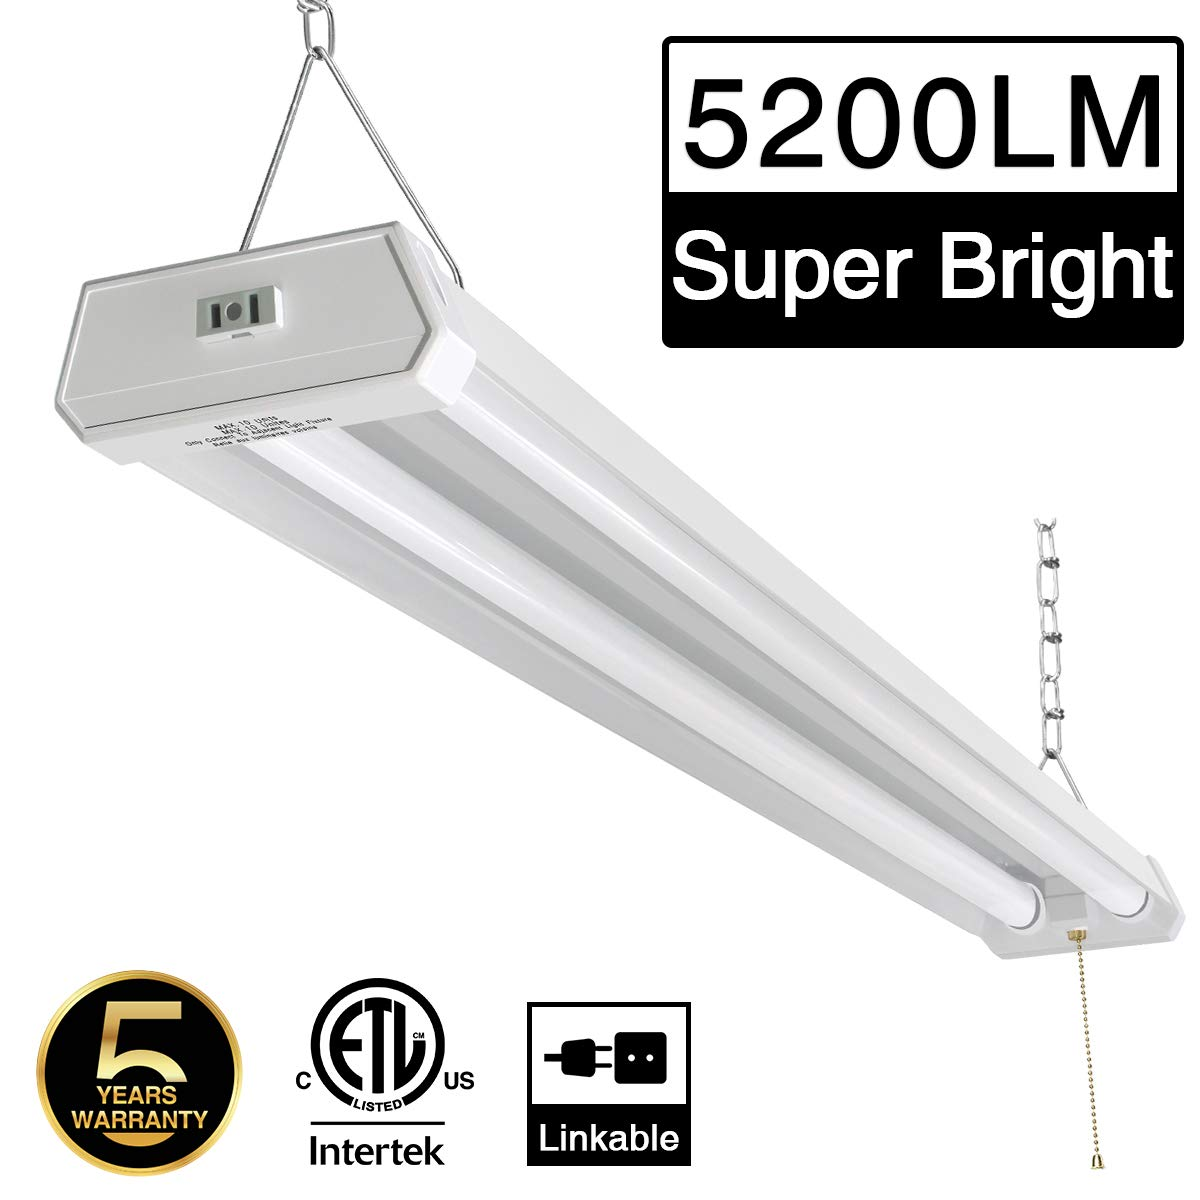 Linkable LED Shop Light for Garage, 42W 5200lm 4FT, 6000-6500K Daylight White, with Pull Chain (ON/Off) cETLus Listed, 5-Year-Warranty, 6000K (1PK)